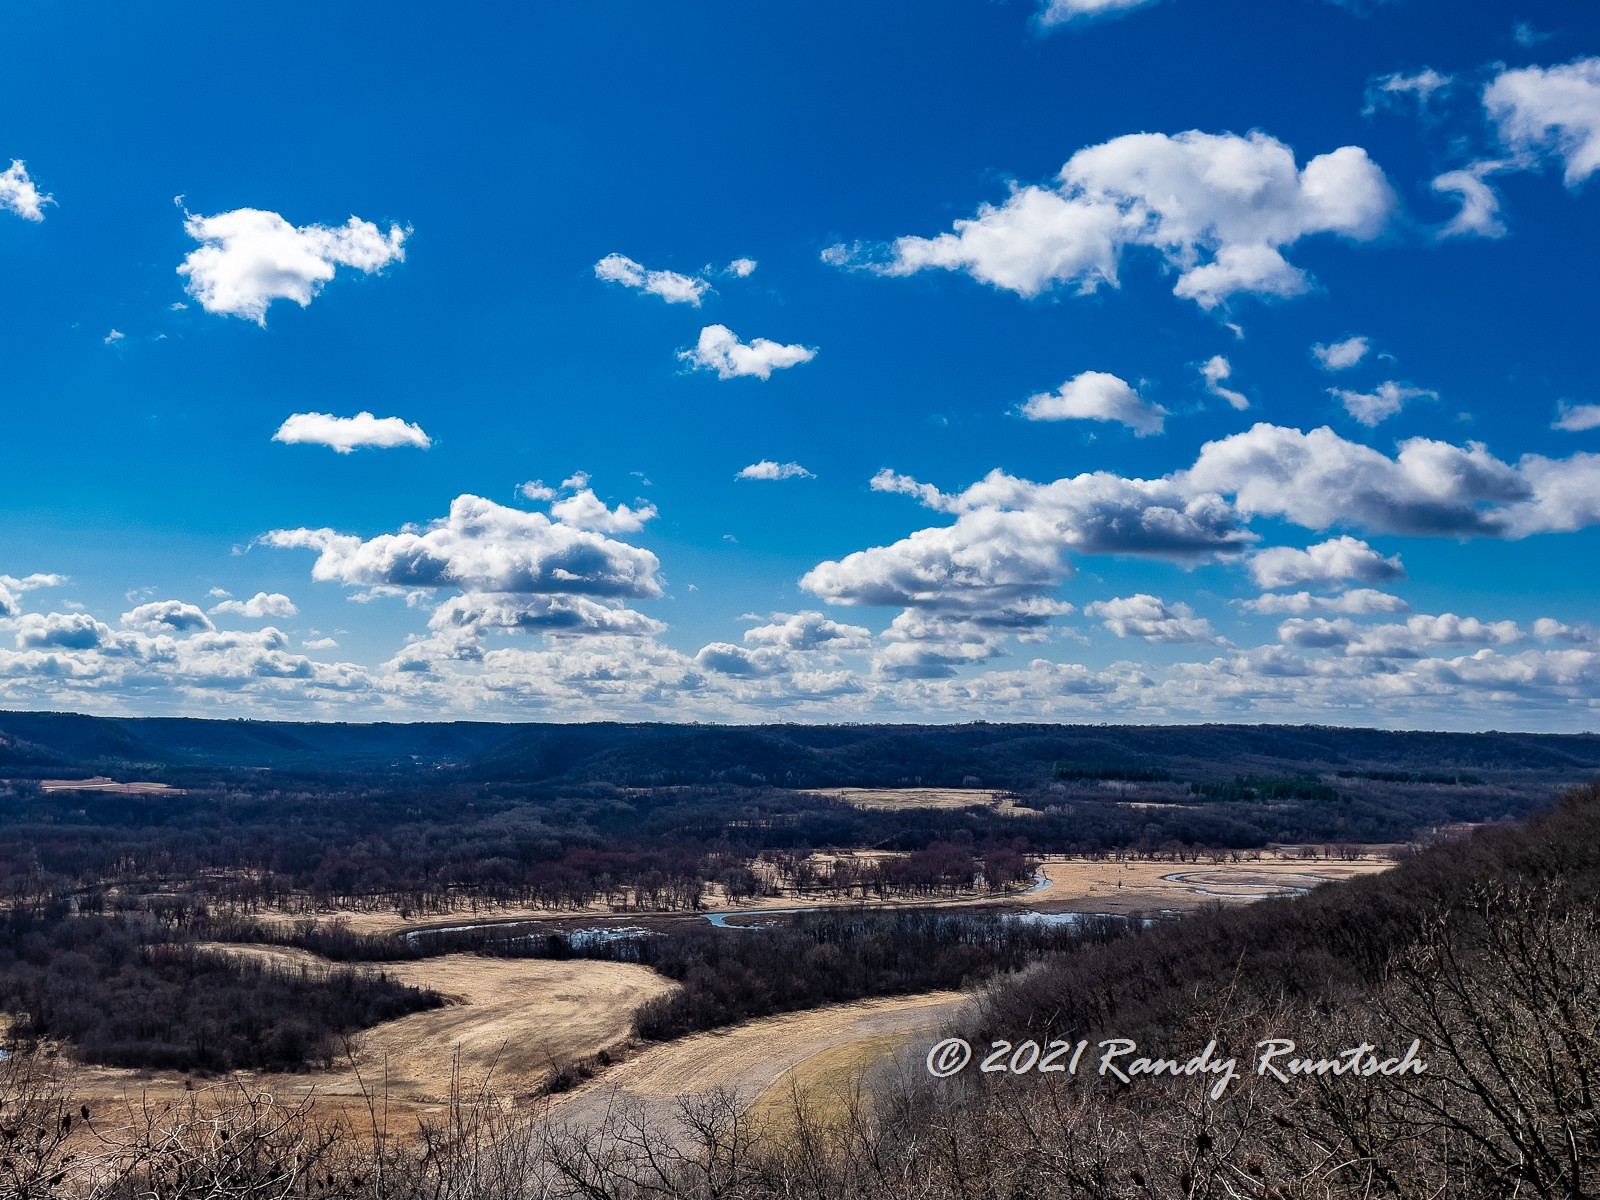 View of the Whitewater River Valley from an overlook near Weaver, Minnesota.